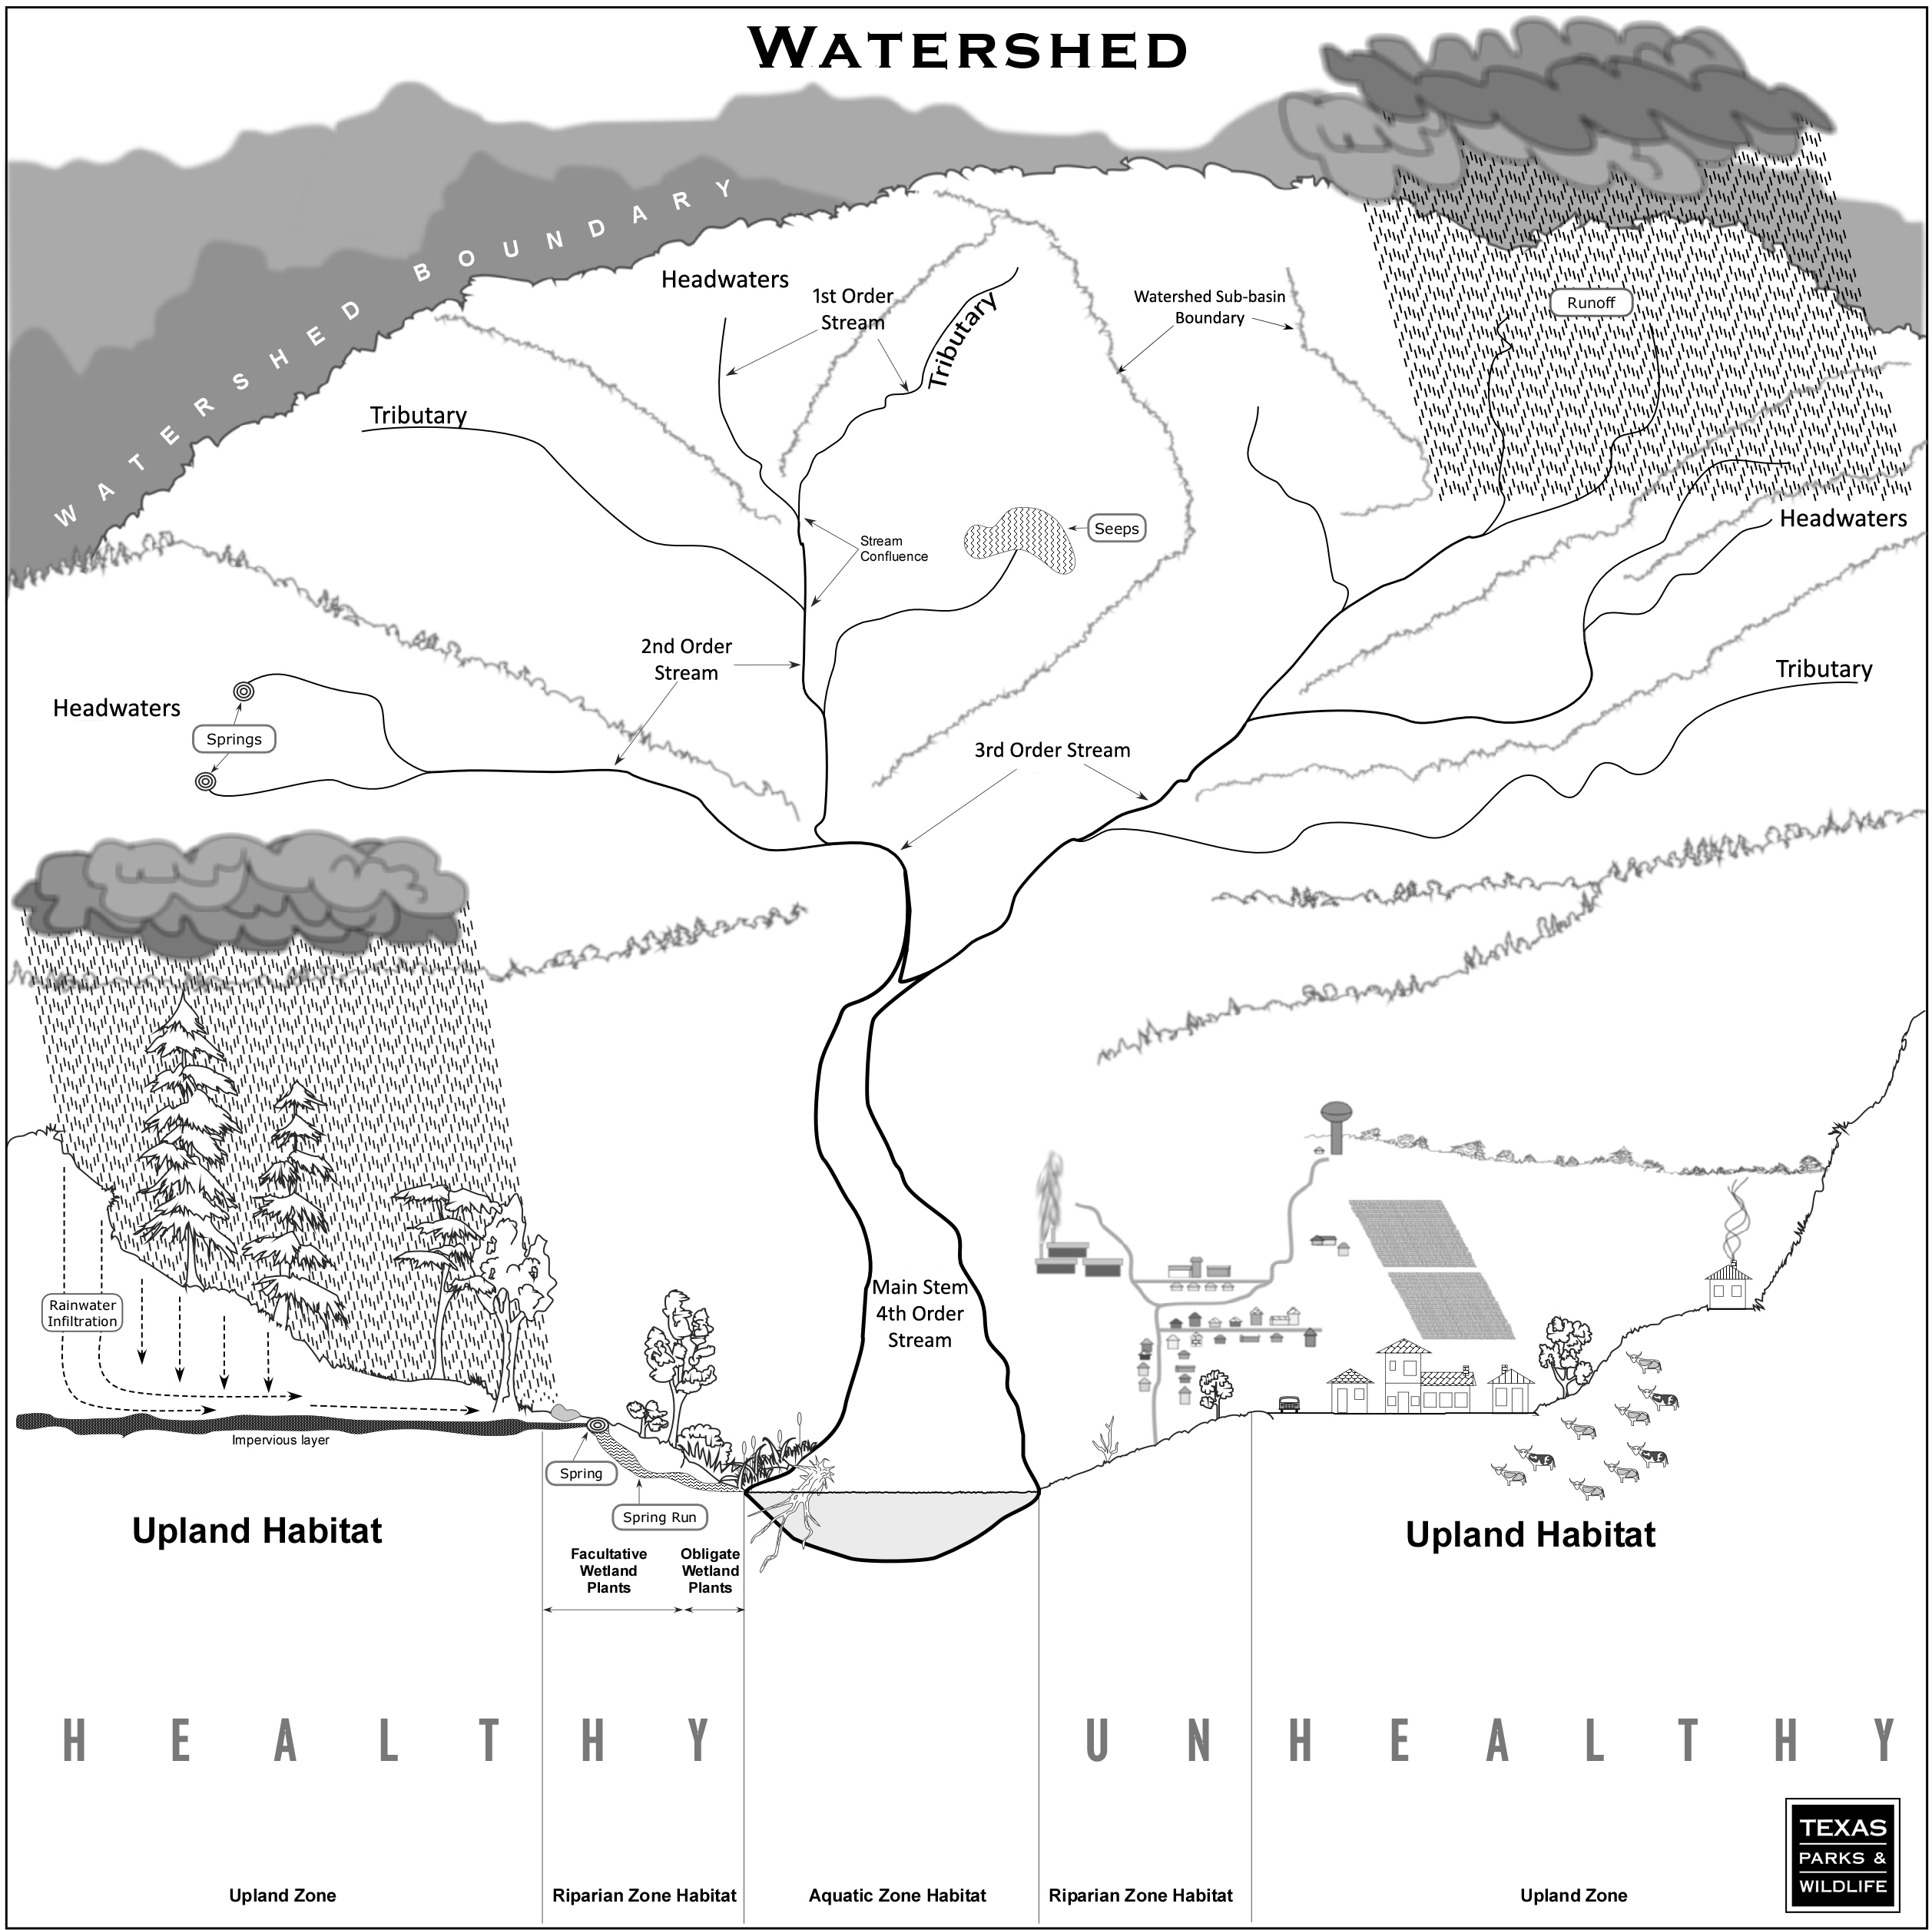 Anatomy of a River - Watershed